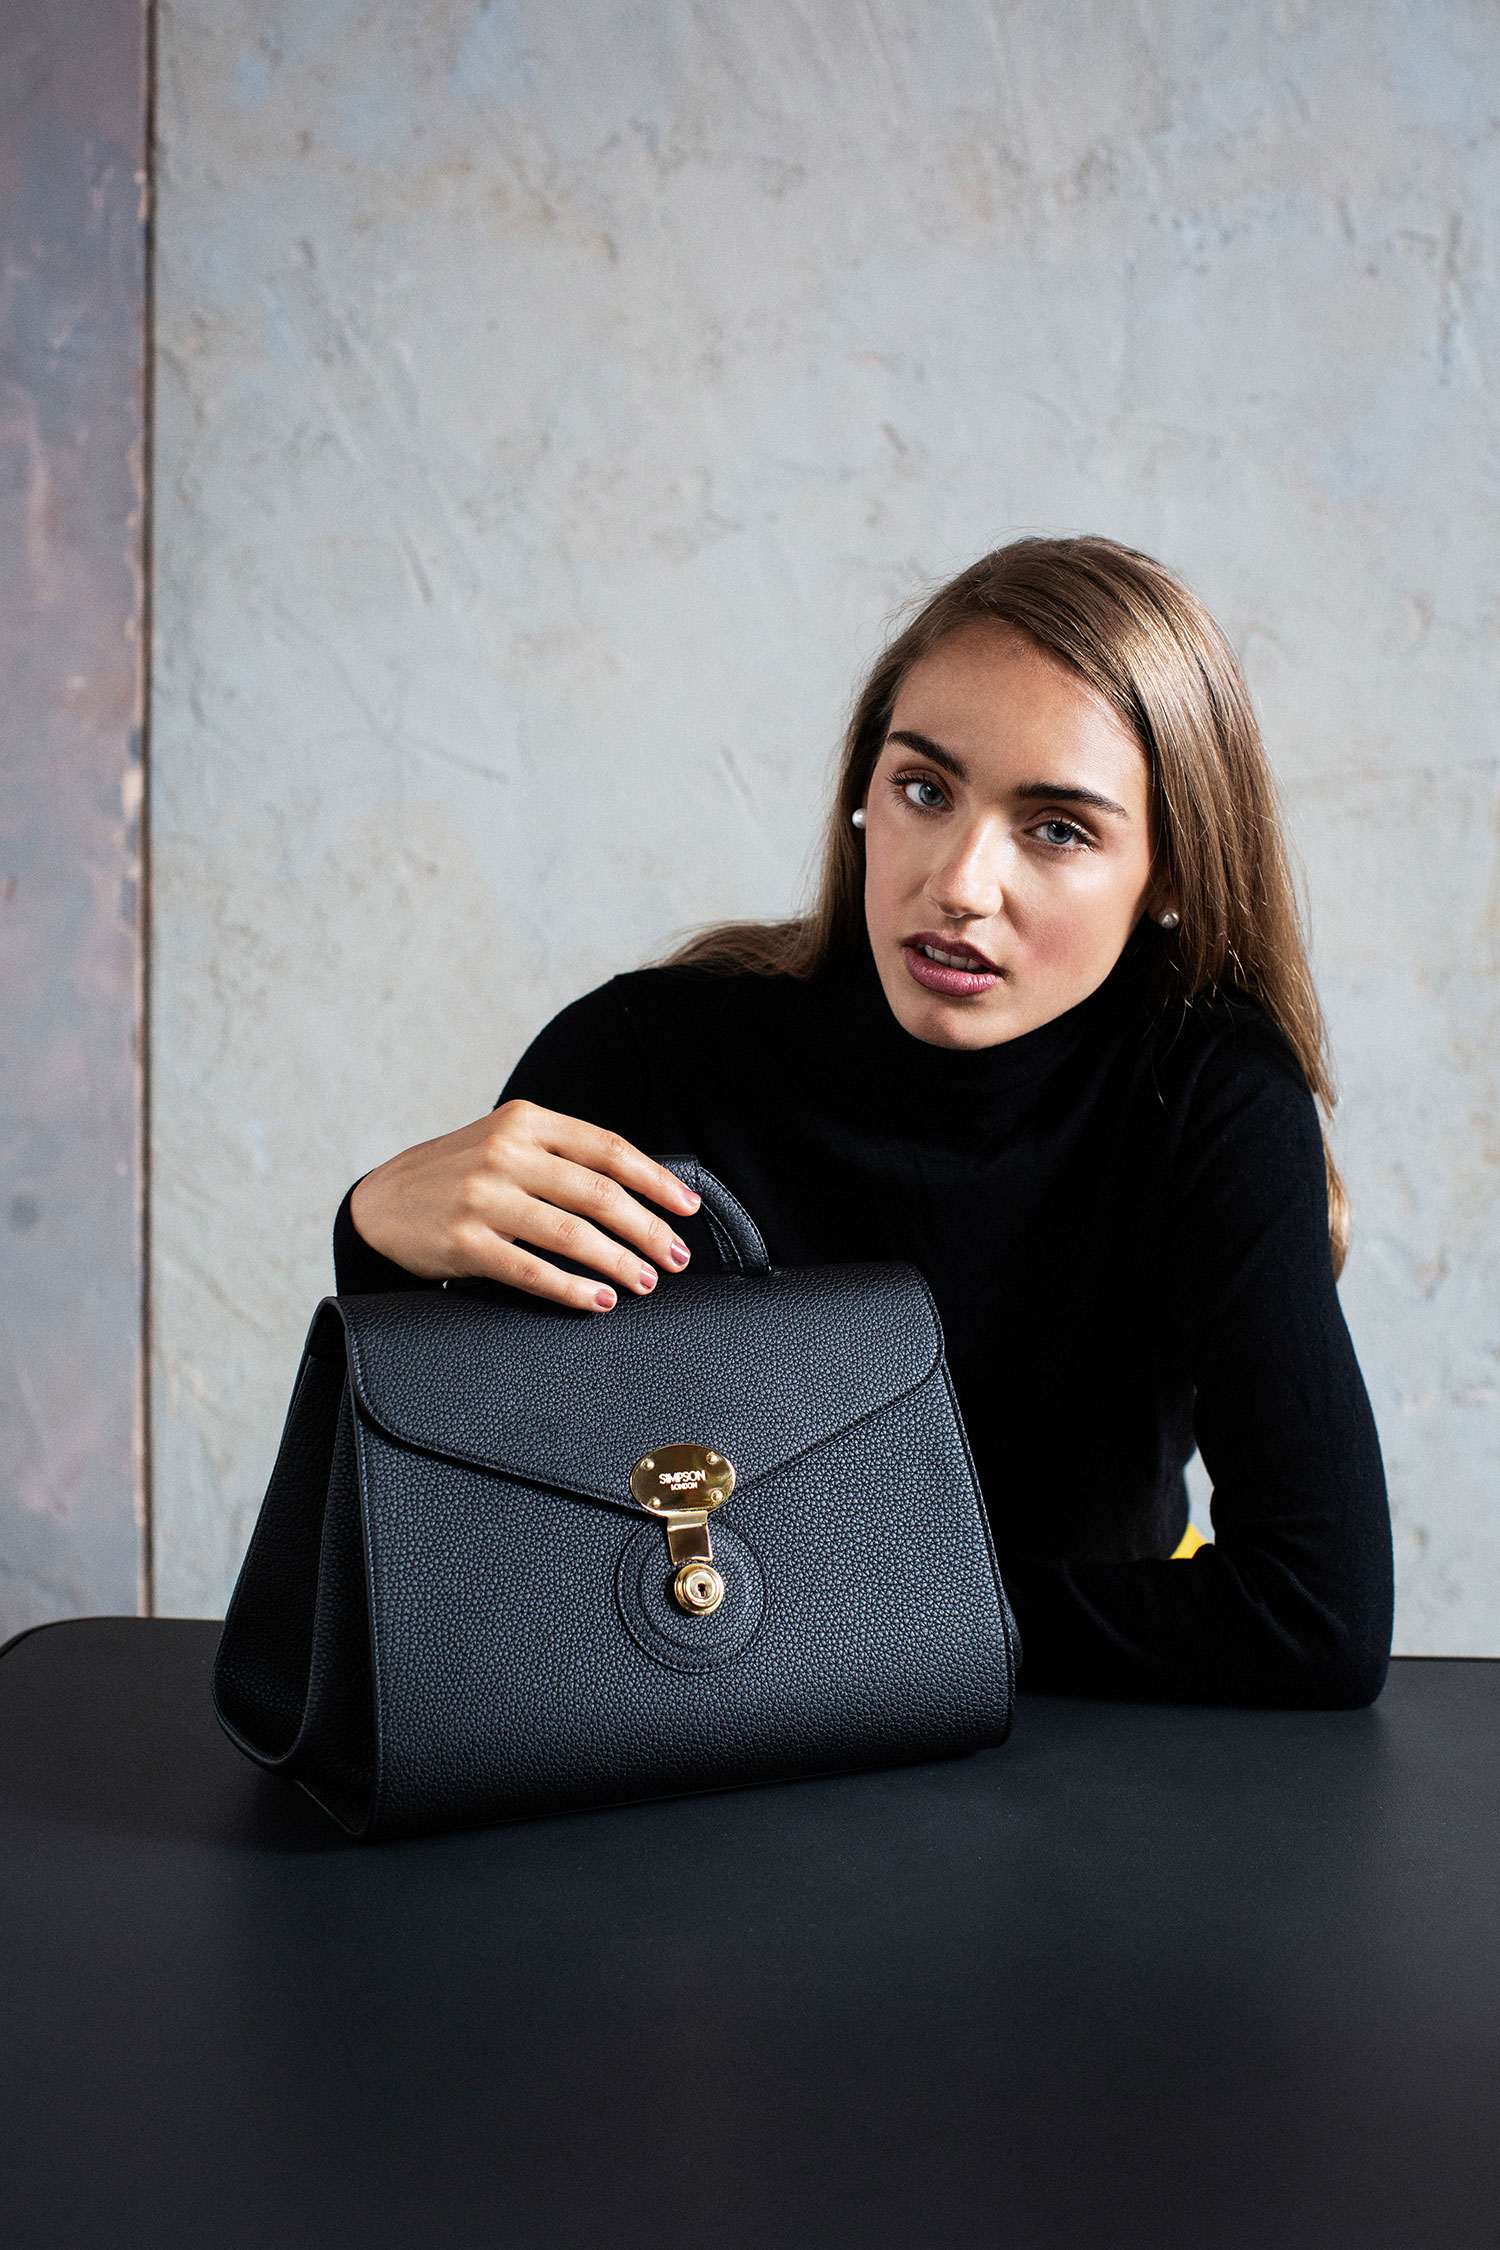 Simpson-London-Luxury-leather-goods-for-her-edited.jpg